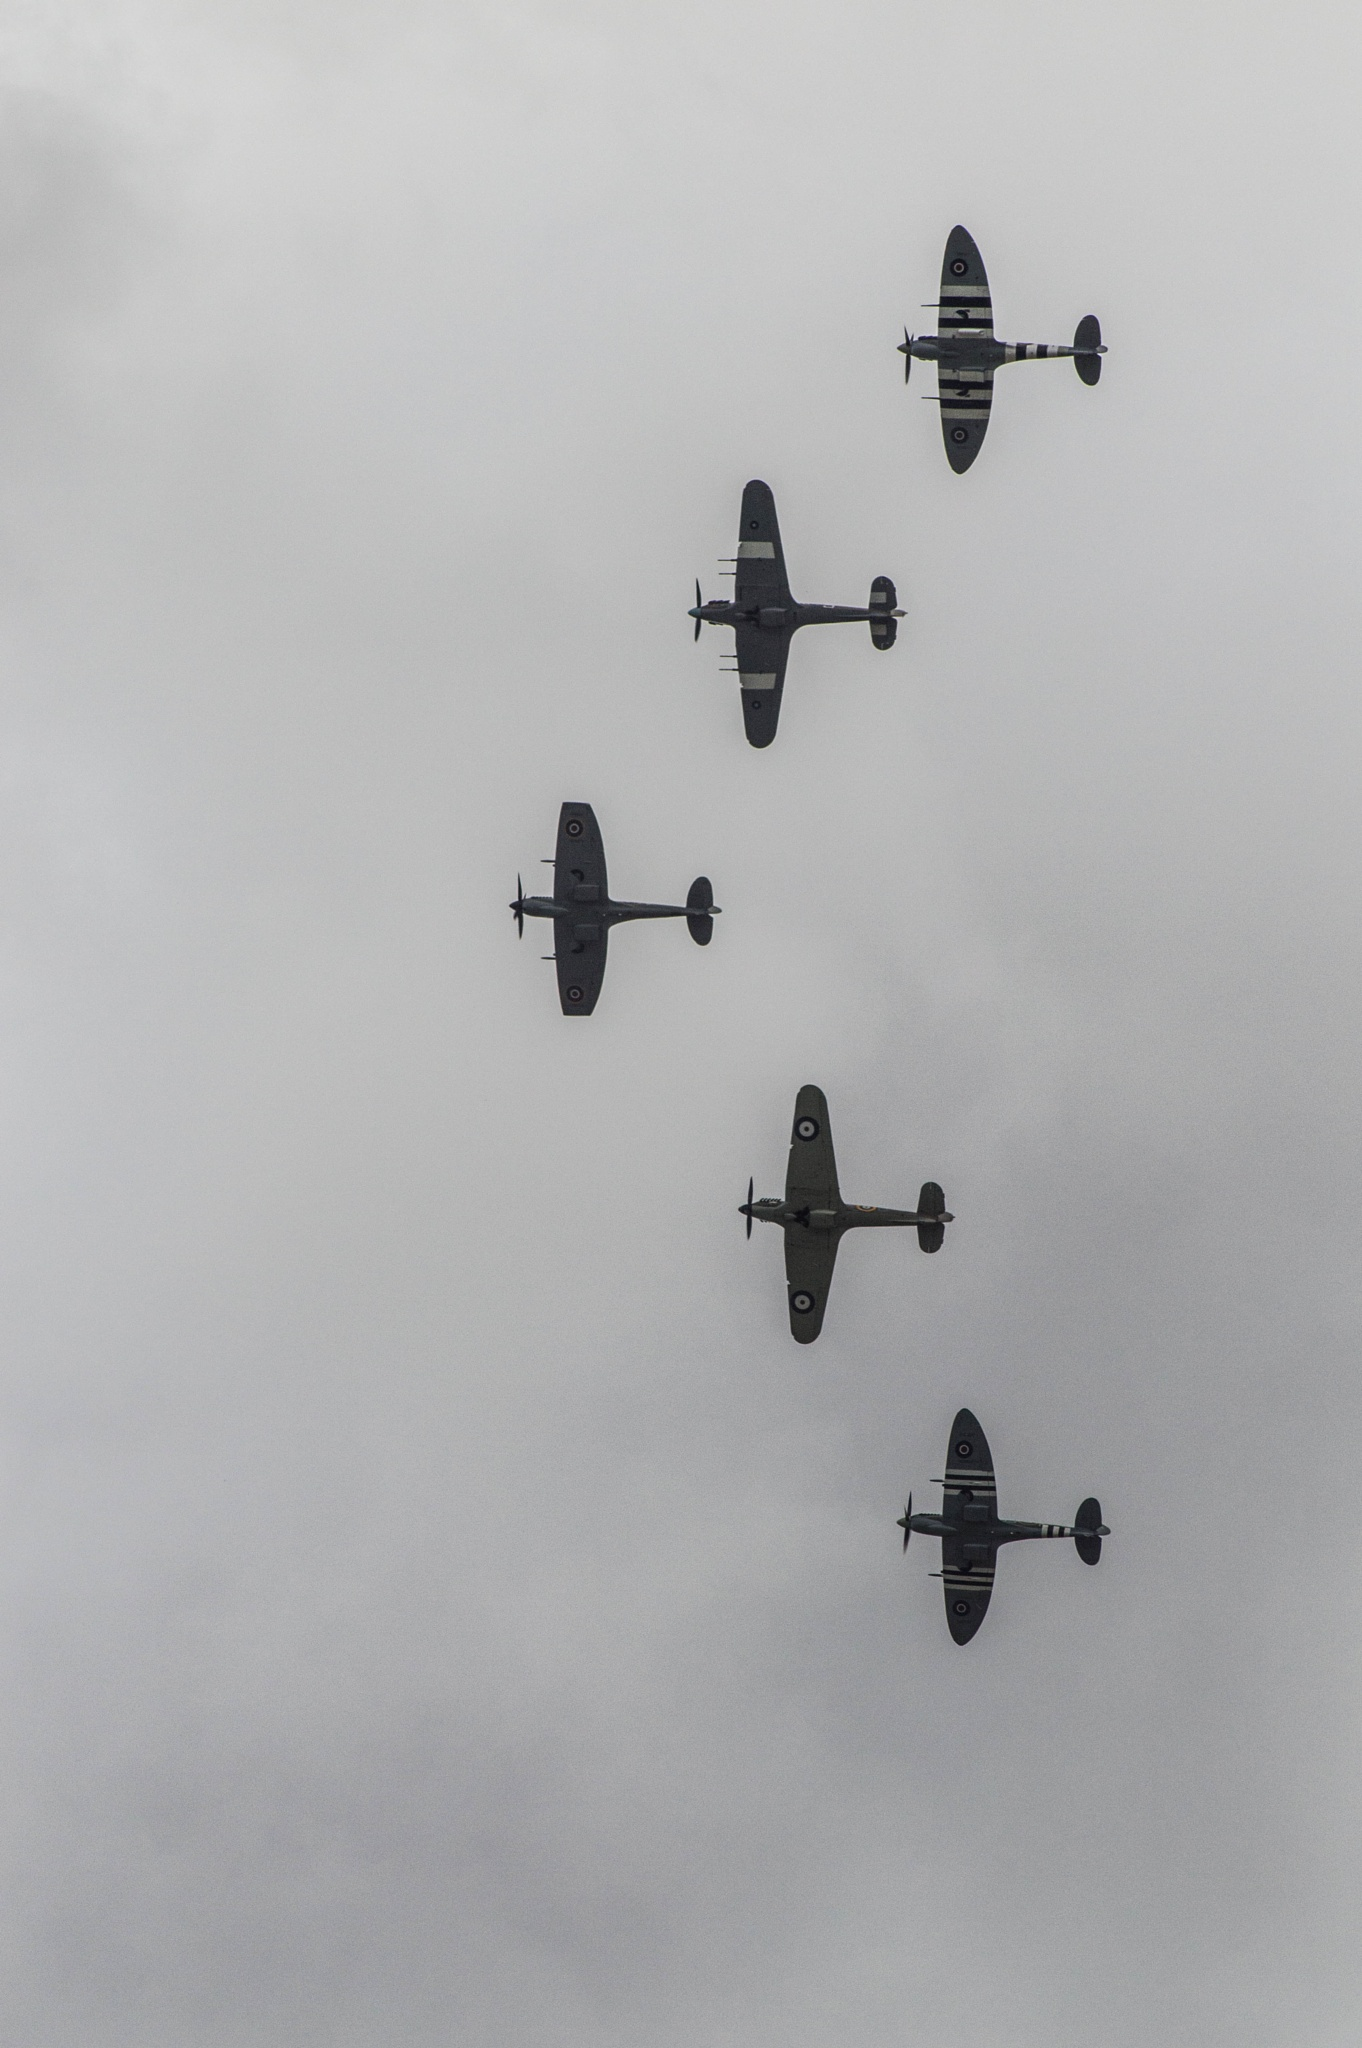 Battle Of Britain by Lucas Hughes